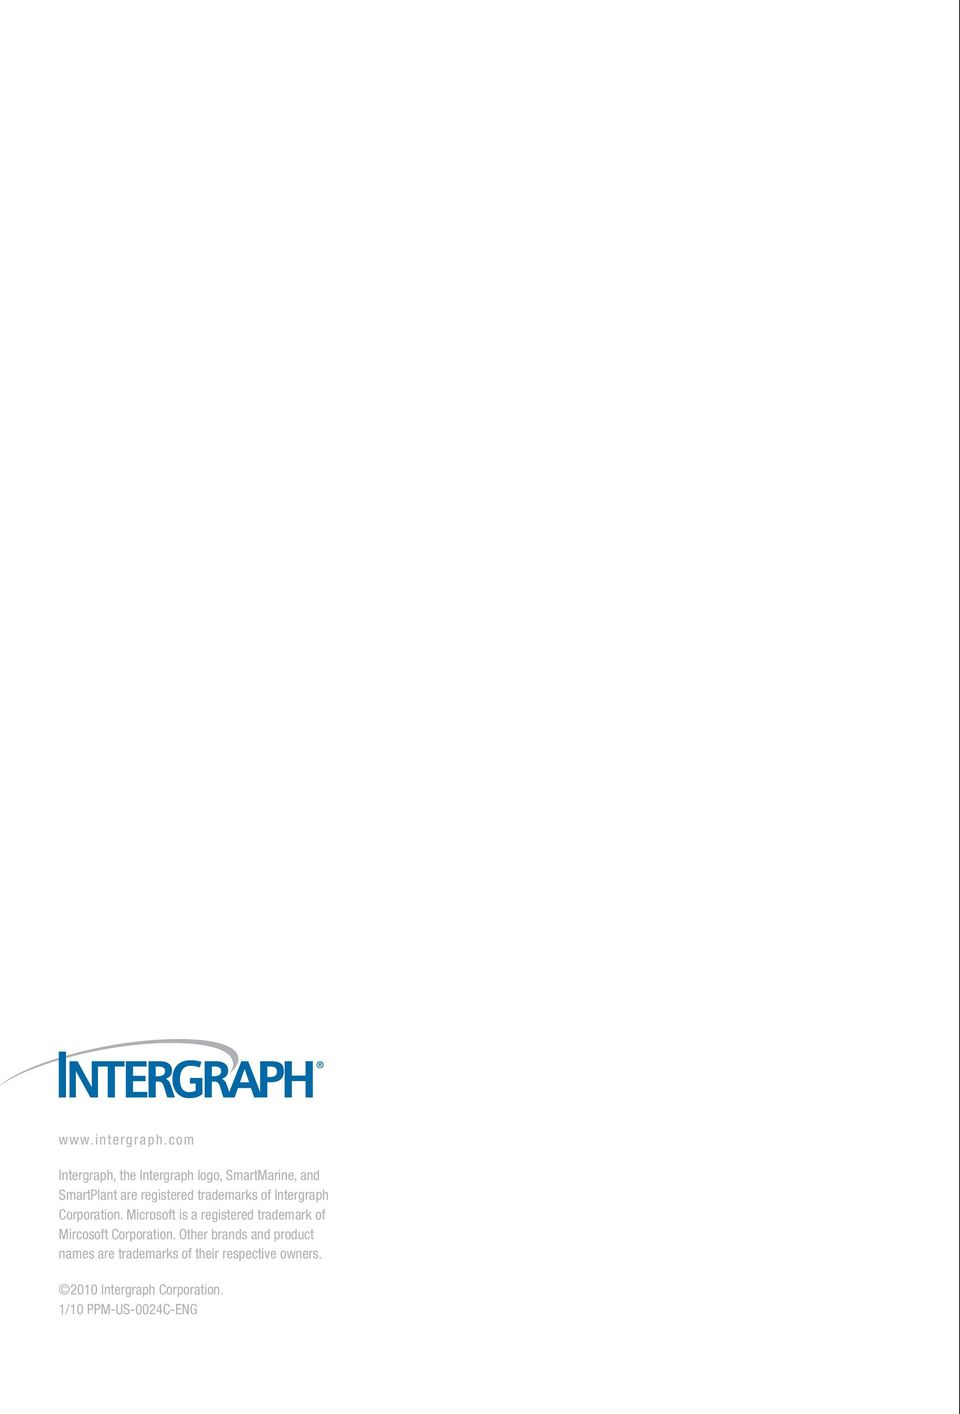 trademarks of Intergraph Corporation.